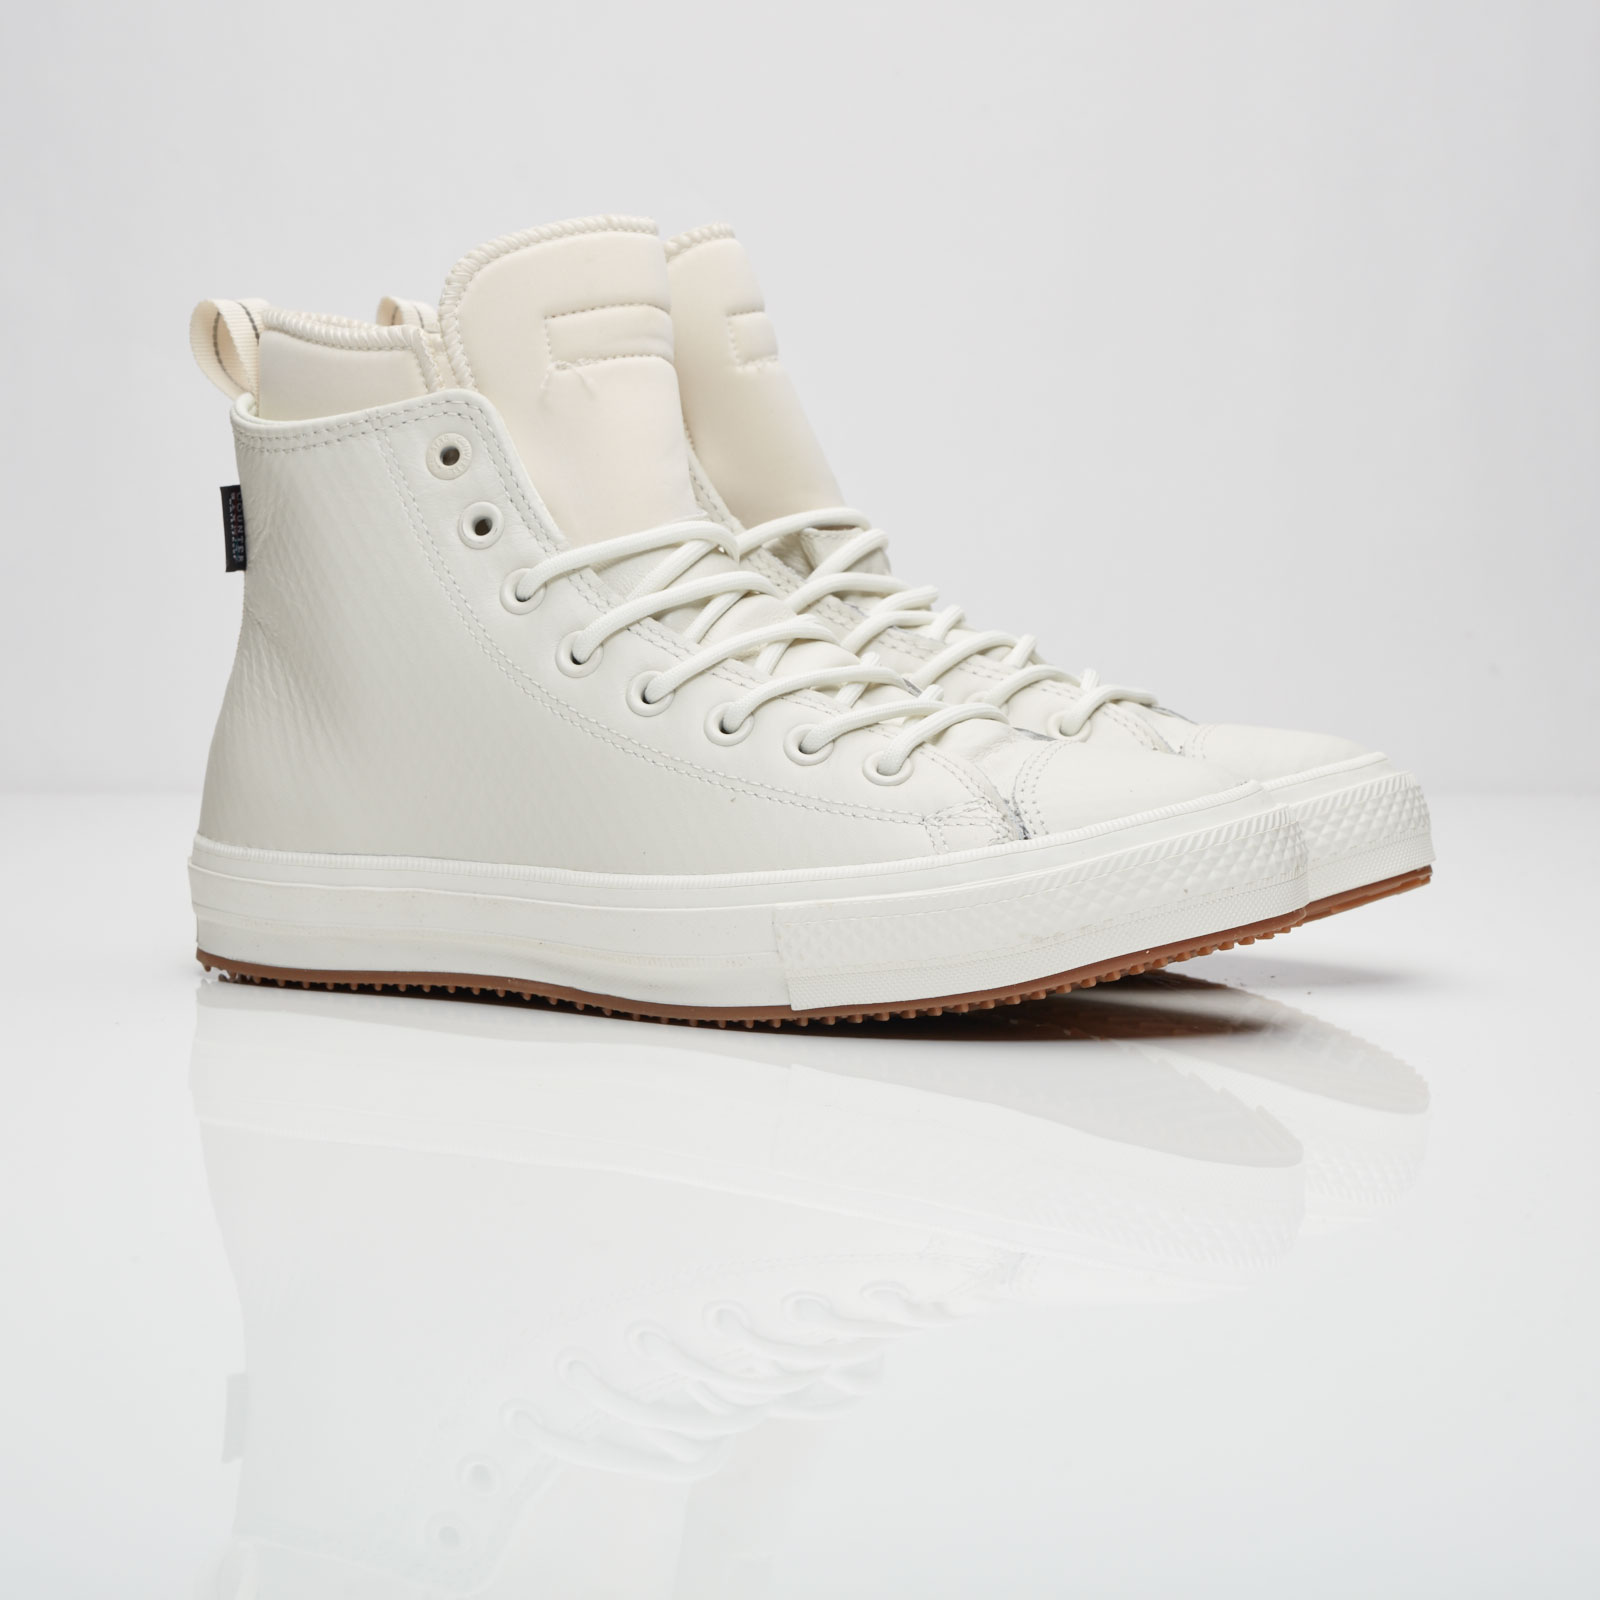 e9dcf12be Converse Chuck Taylor All Star II Boot Hi - 153574c - Sneakersnstuff ...